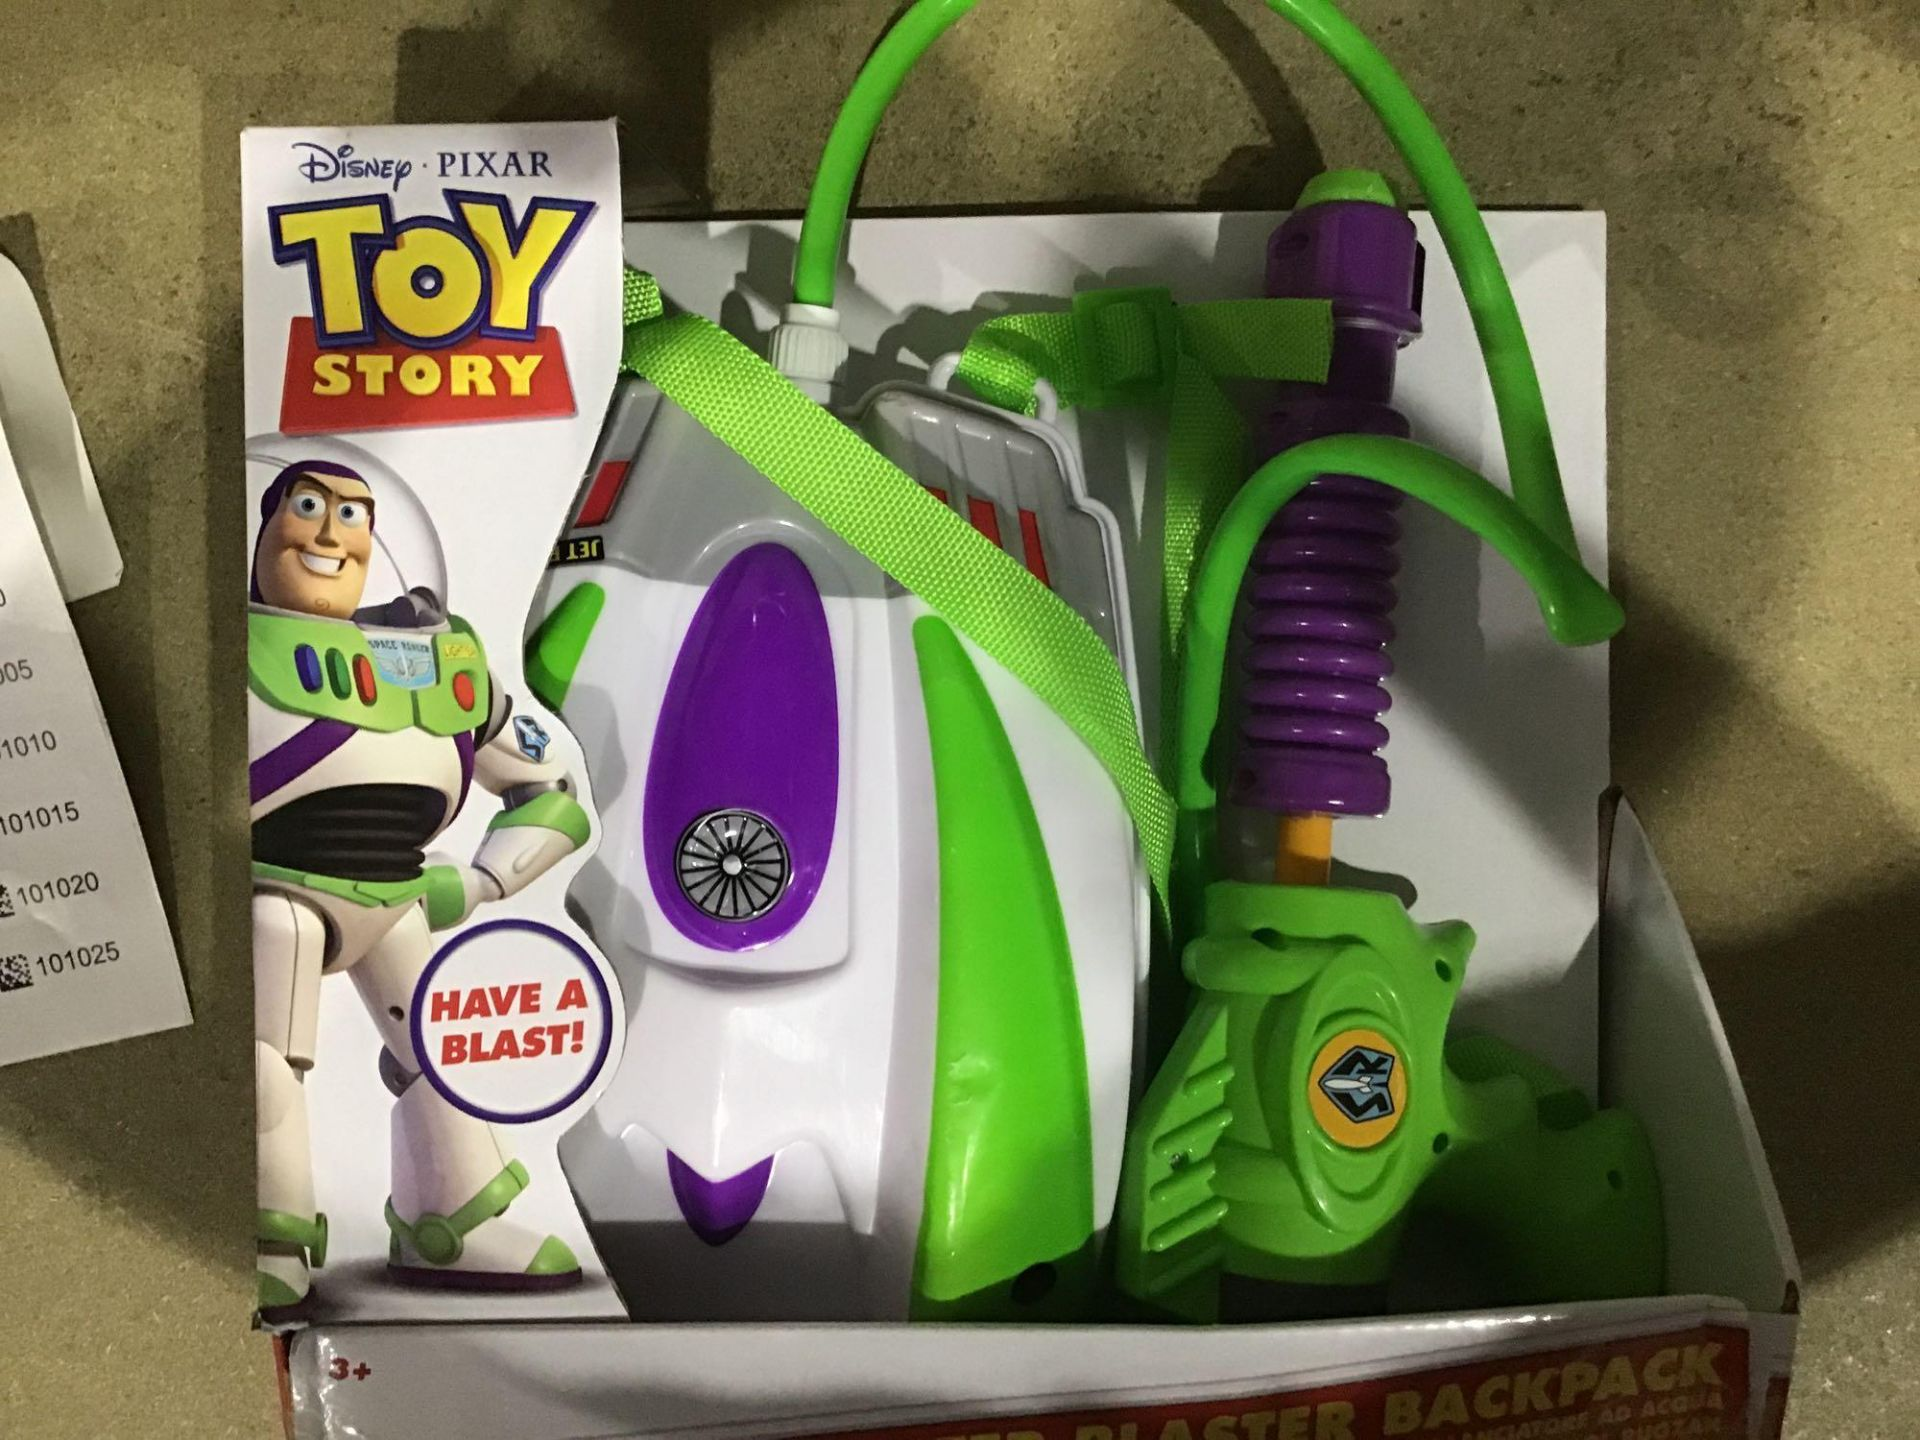 Disney Toy Story Buzz Lightyear Water Blaster Backpack, £10.00 RRP - Image 3 of 4